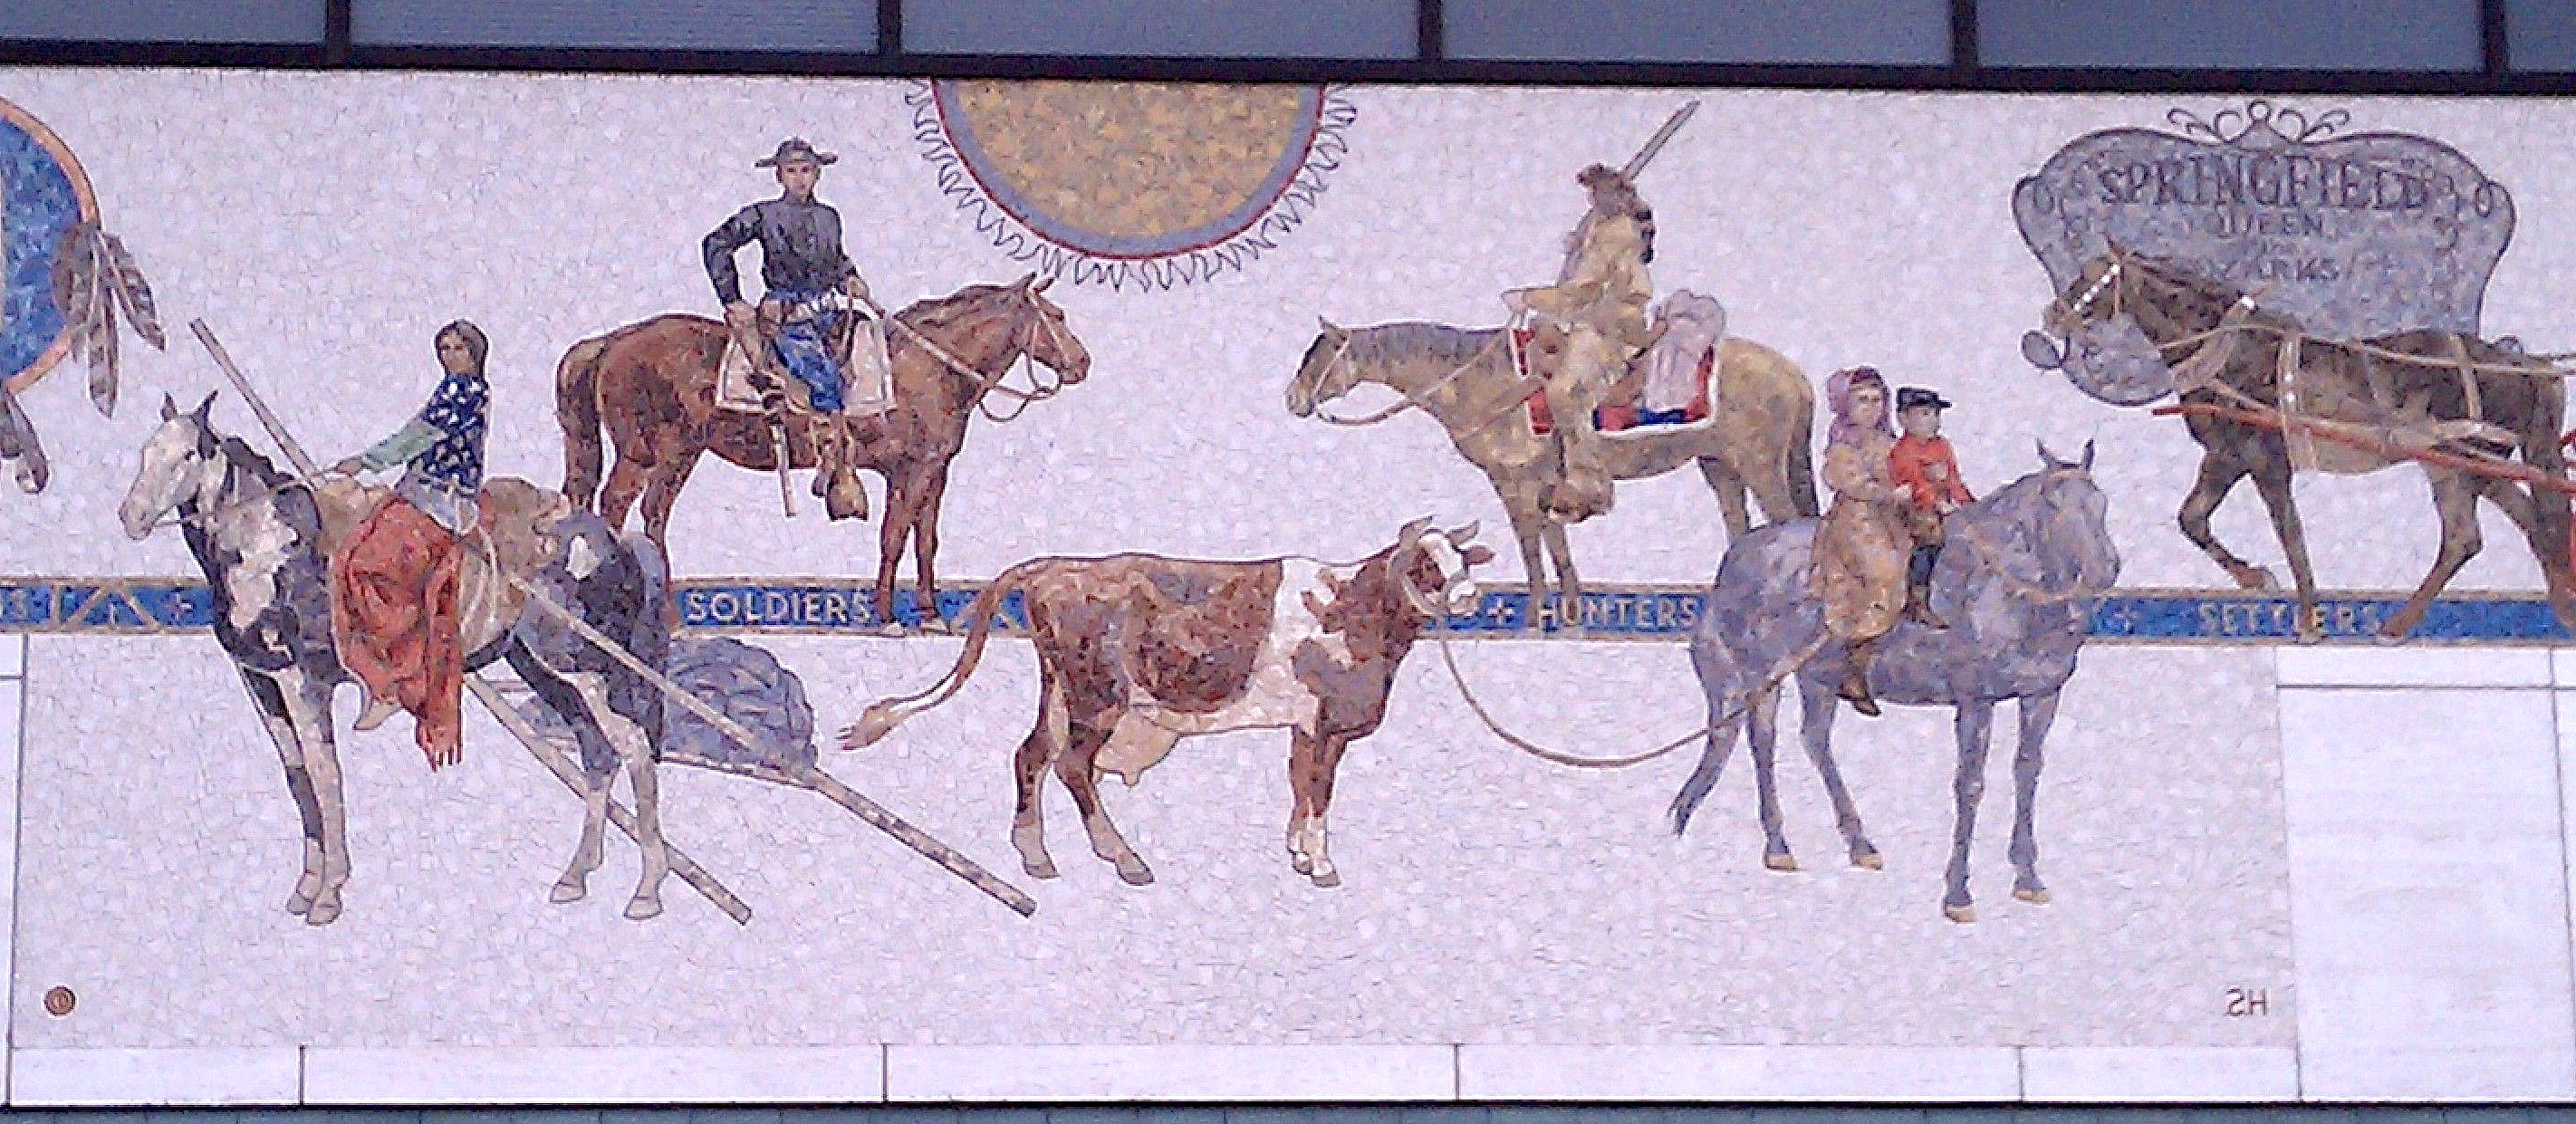 Denis O'Connor, Sue Hertel, and Studio MosaicArt di D.Colledani-Milan, mosaic, Savings of America, Springfield, Missouri, 1986. Note the goof at installation that reversed the SH of Sue's signature at bottom right.